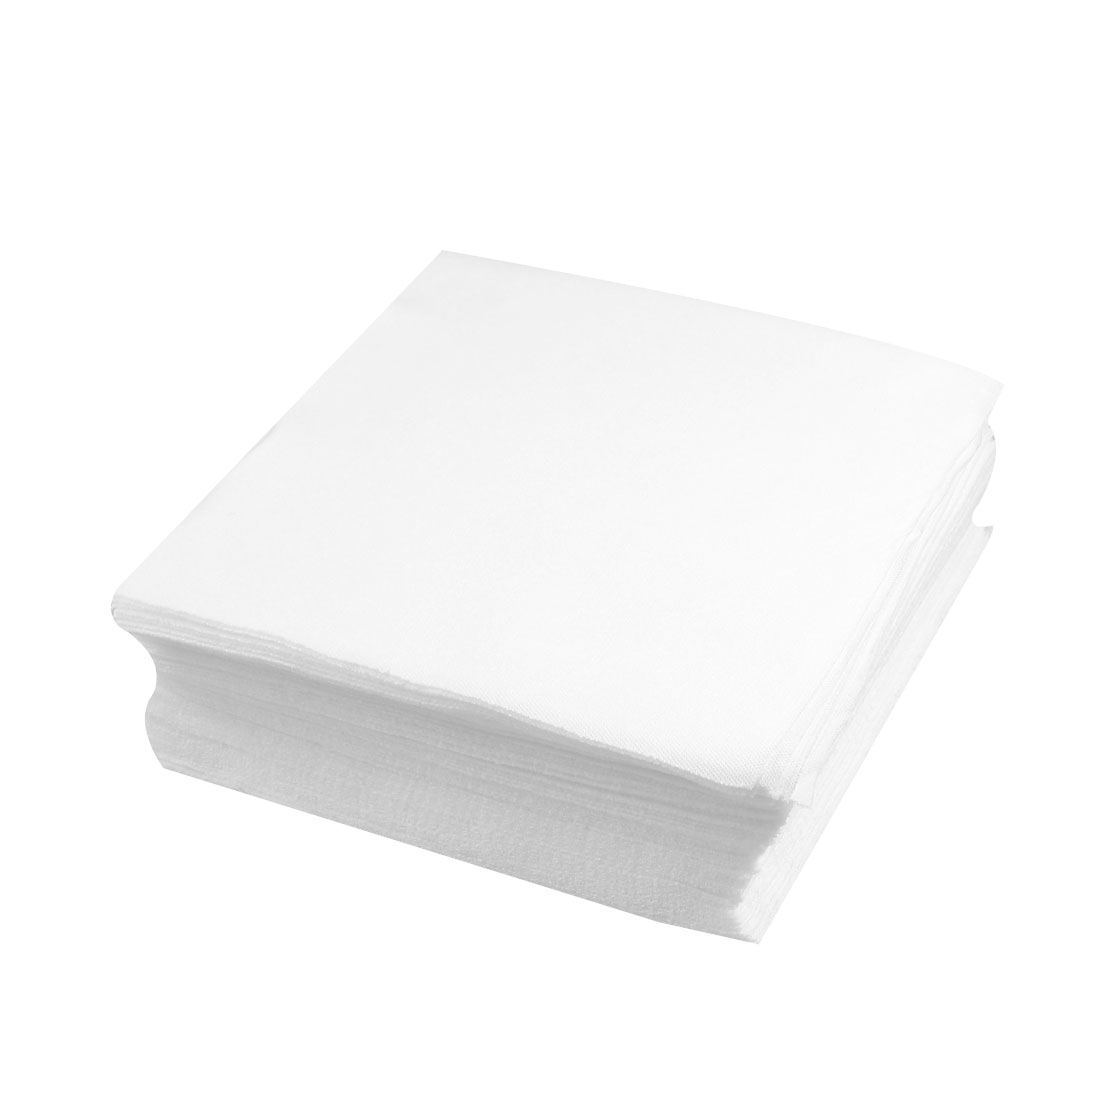 "100 Pcs PCB Clean Dustless Cleanroom Wiper Cloth White 6"" x 6"""